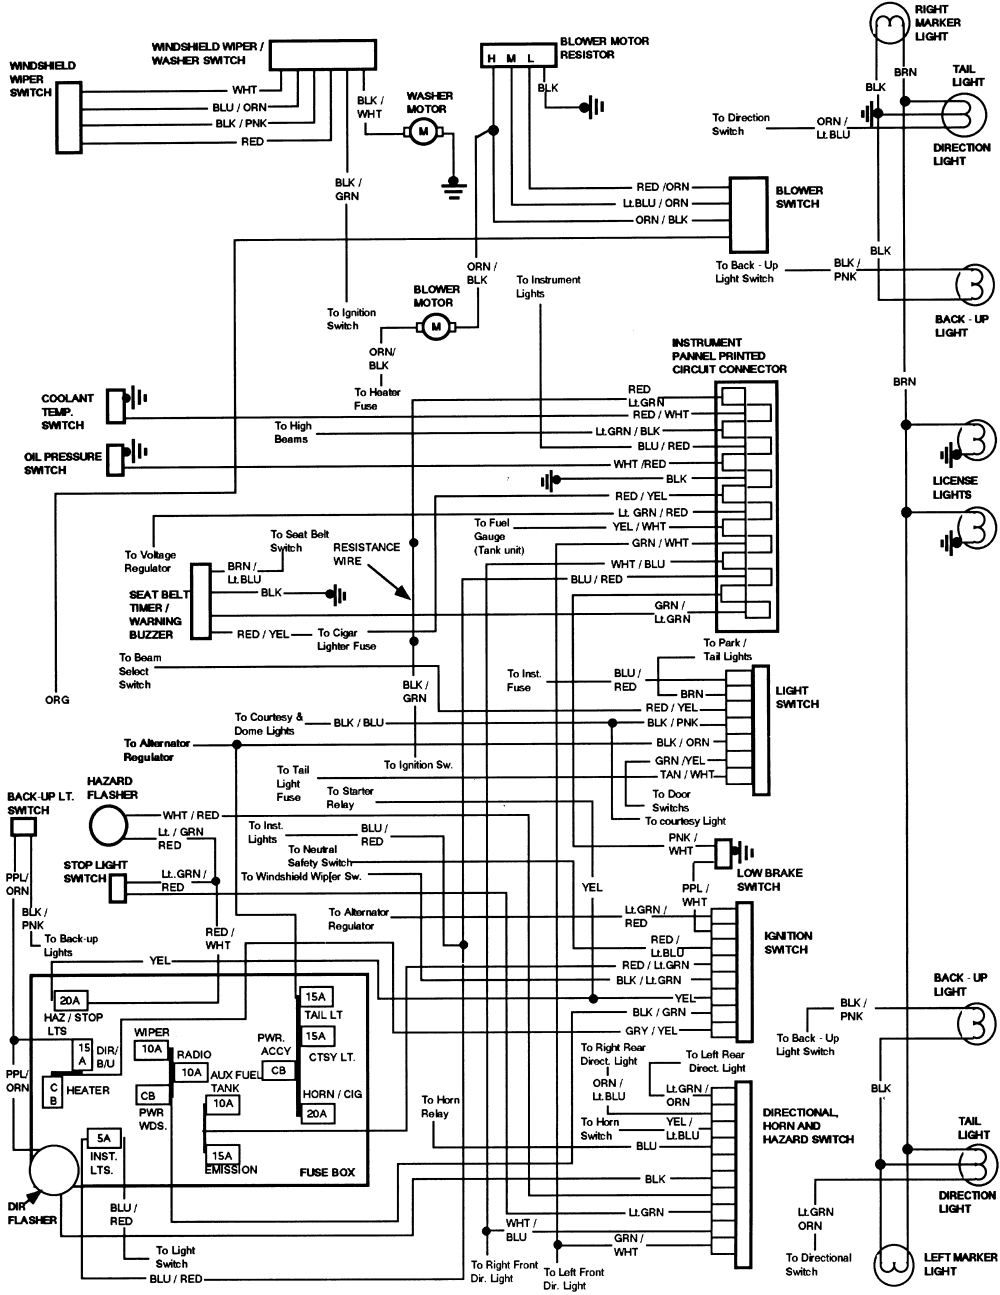 wiring diagram for 1974 ford bronco – the wiring diagram, Wiring diagram